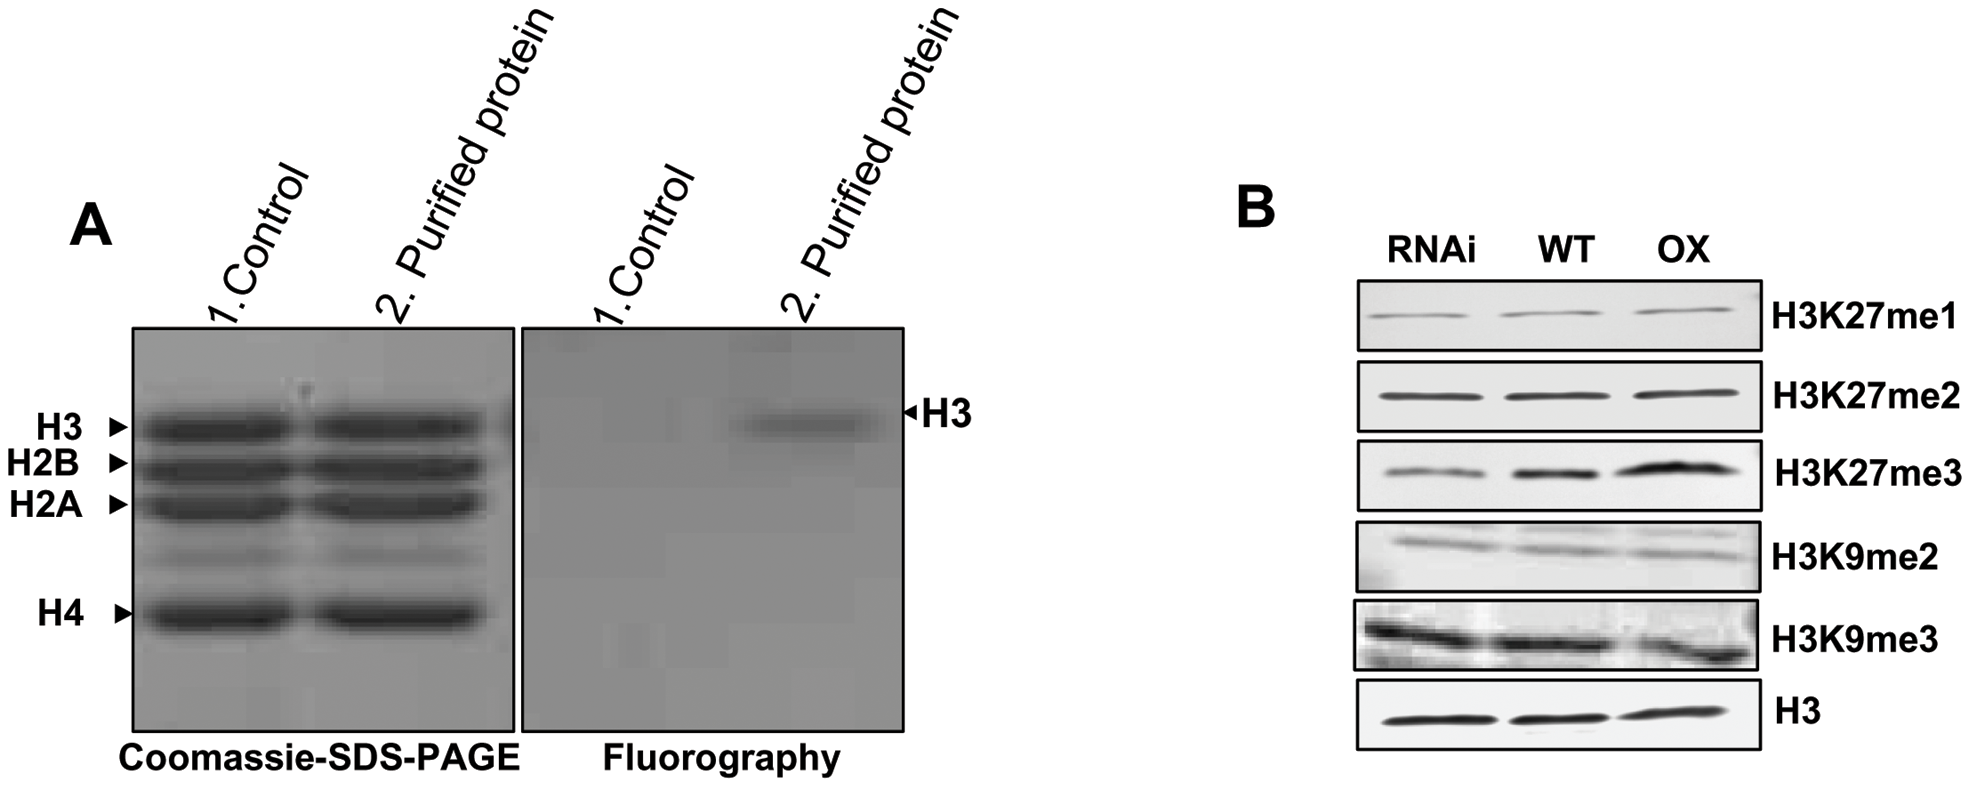 <i>In vitro</i> histone methyl transferase assay and immunoblot analyses of H3 modifications in transgenic lines.